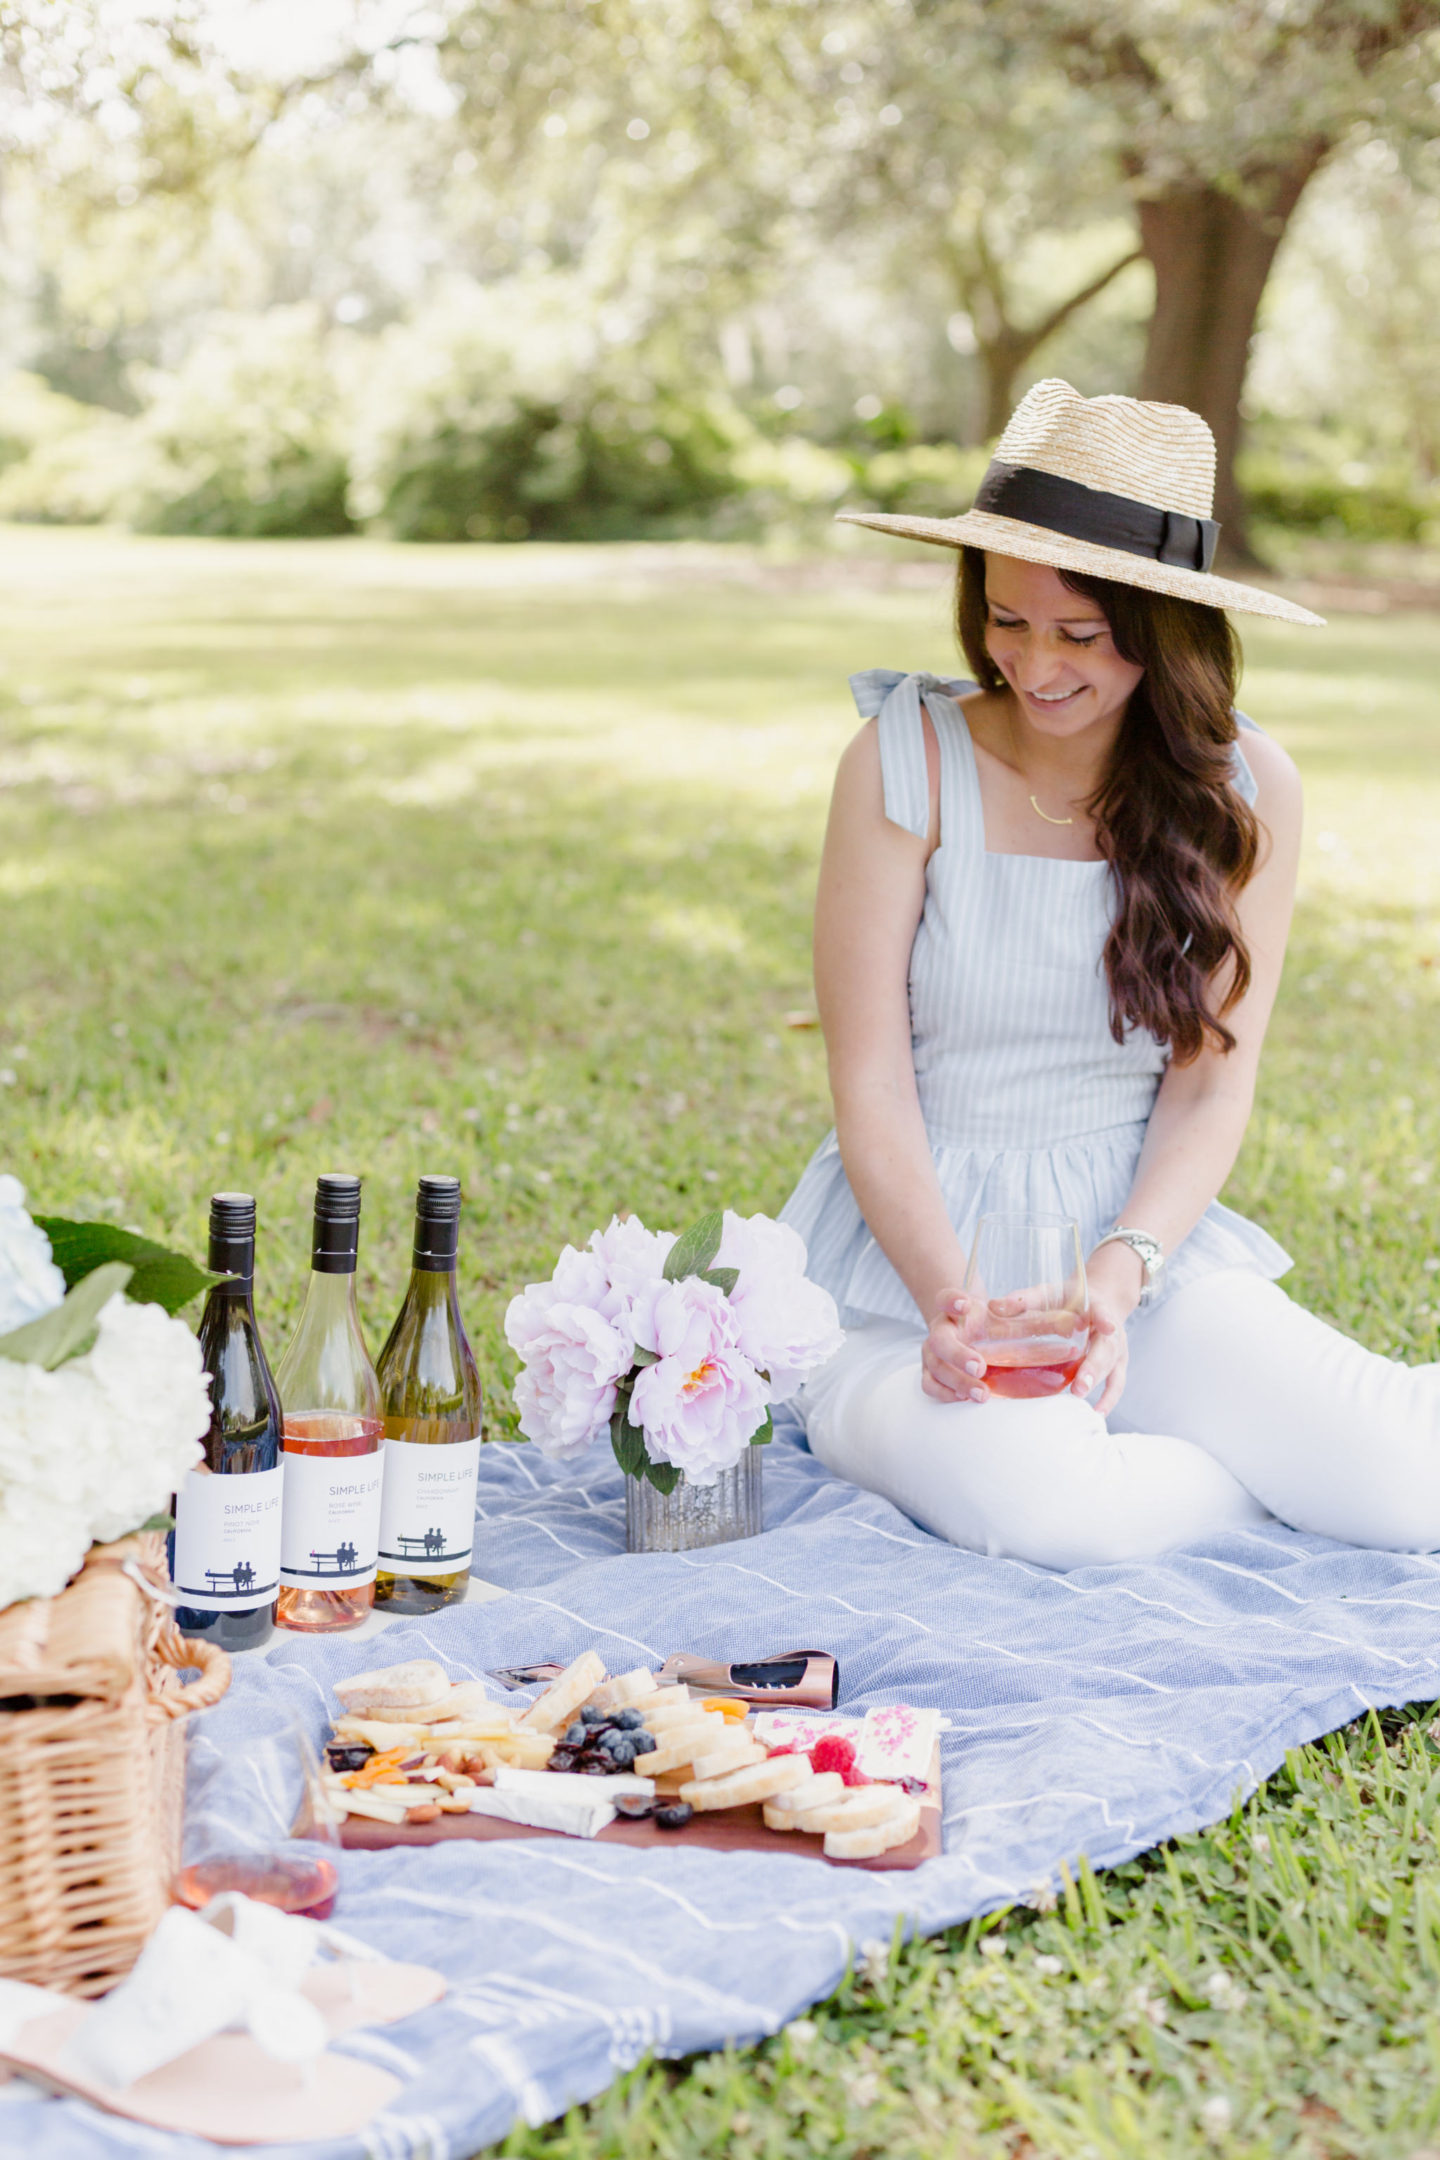 Picnic With Simple Life Wines